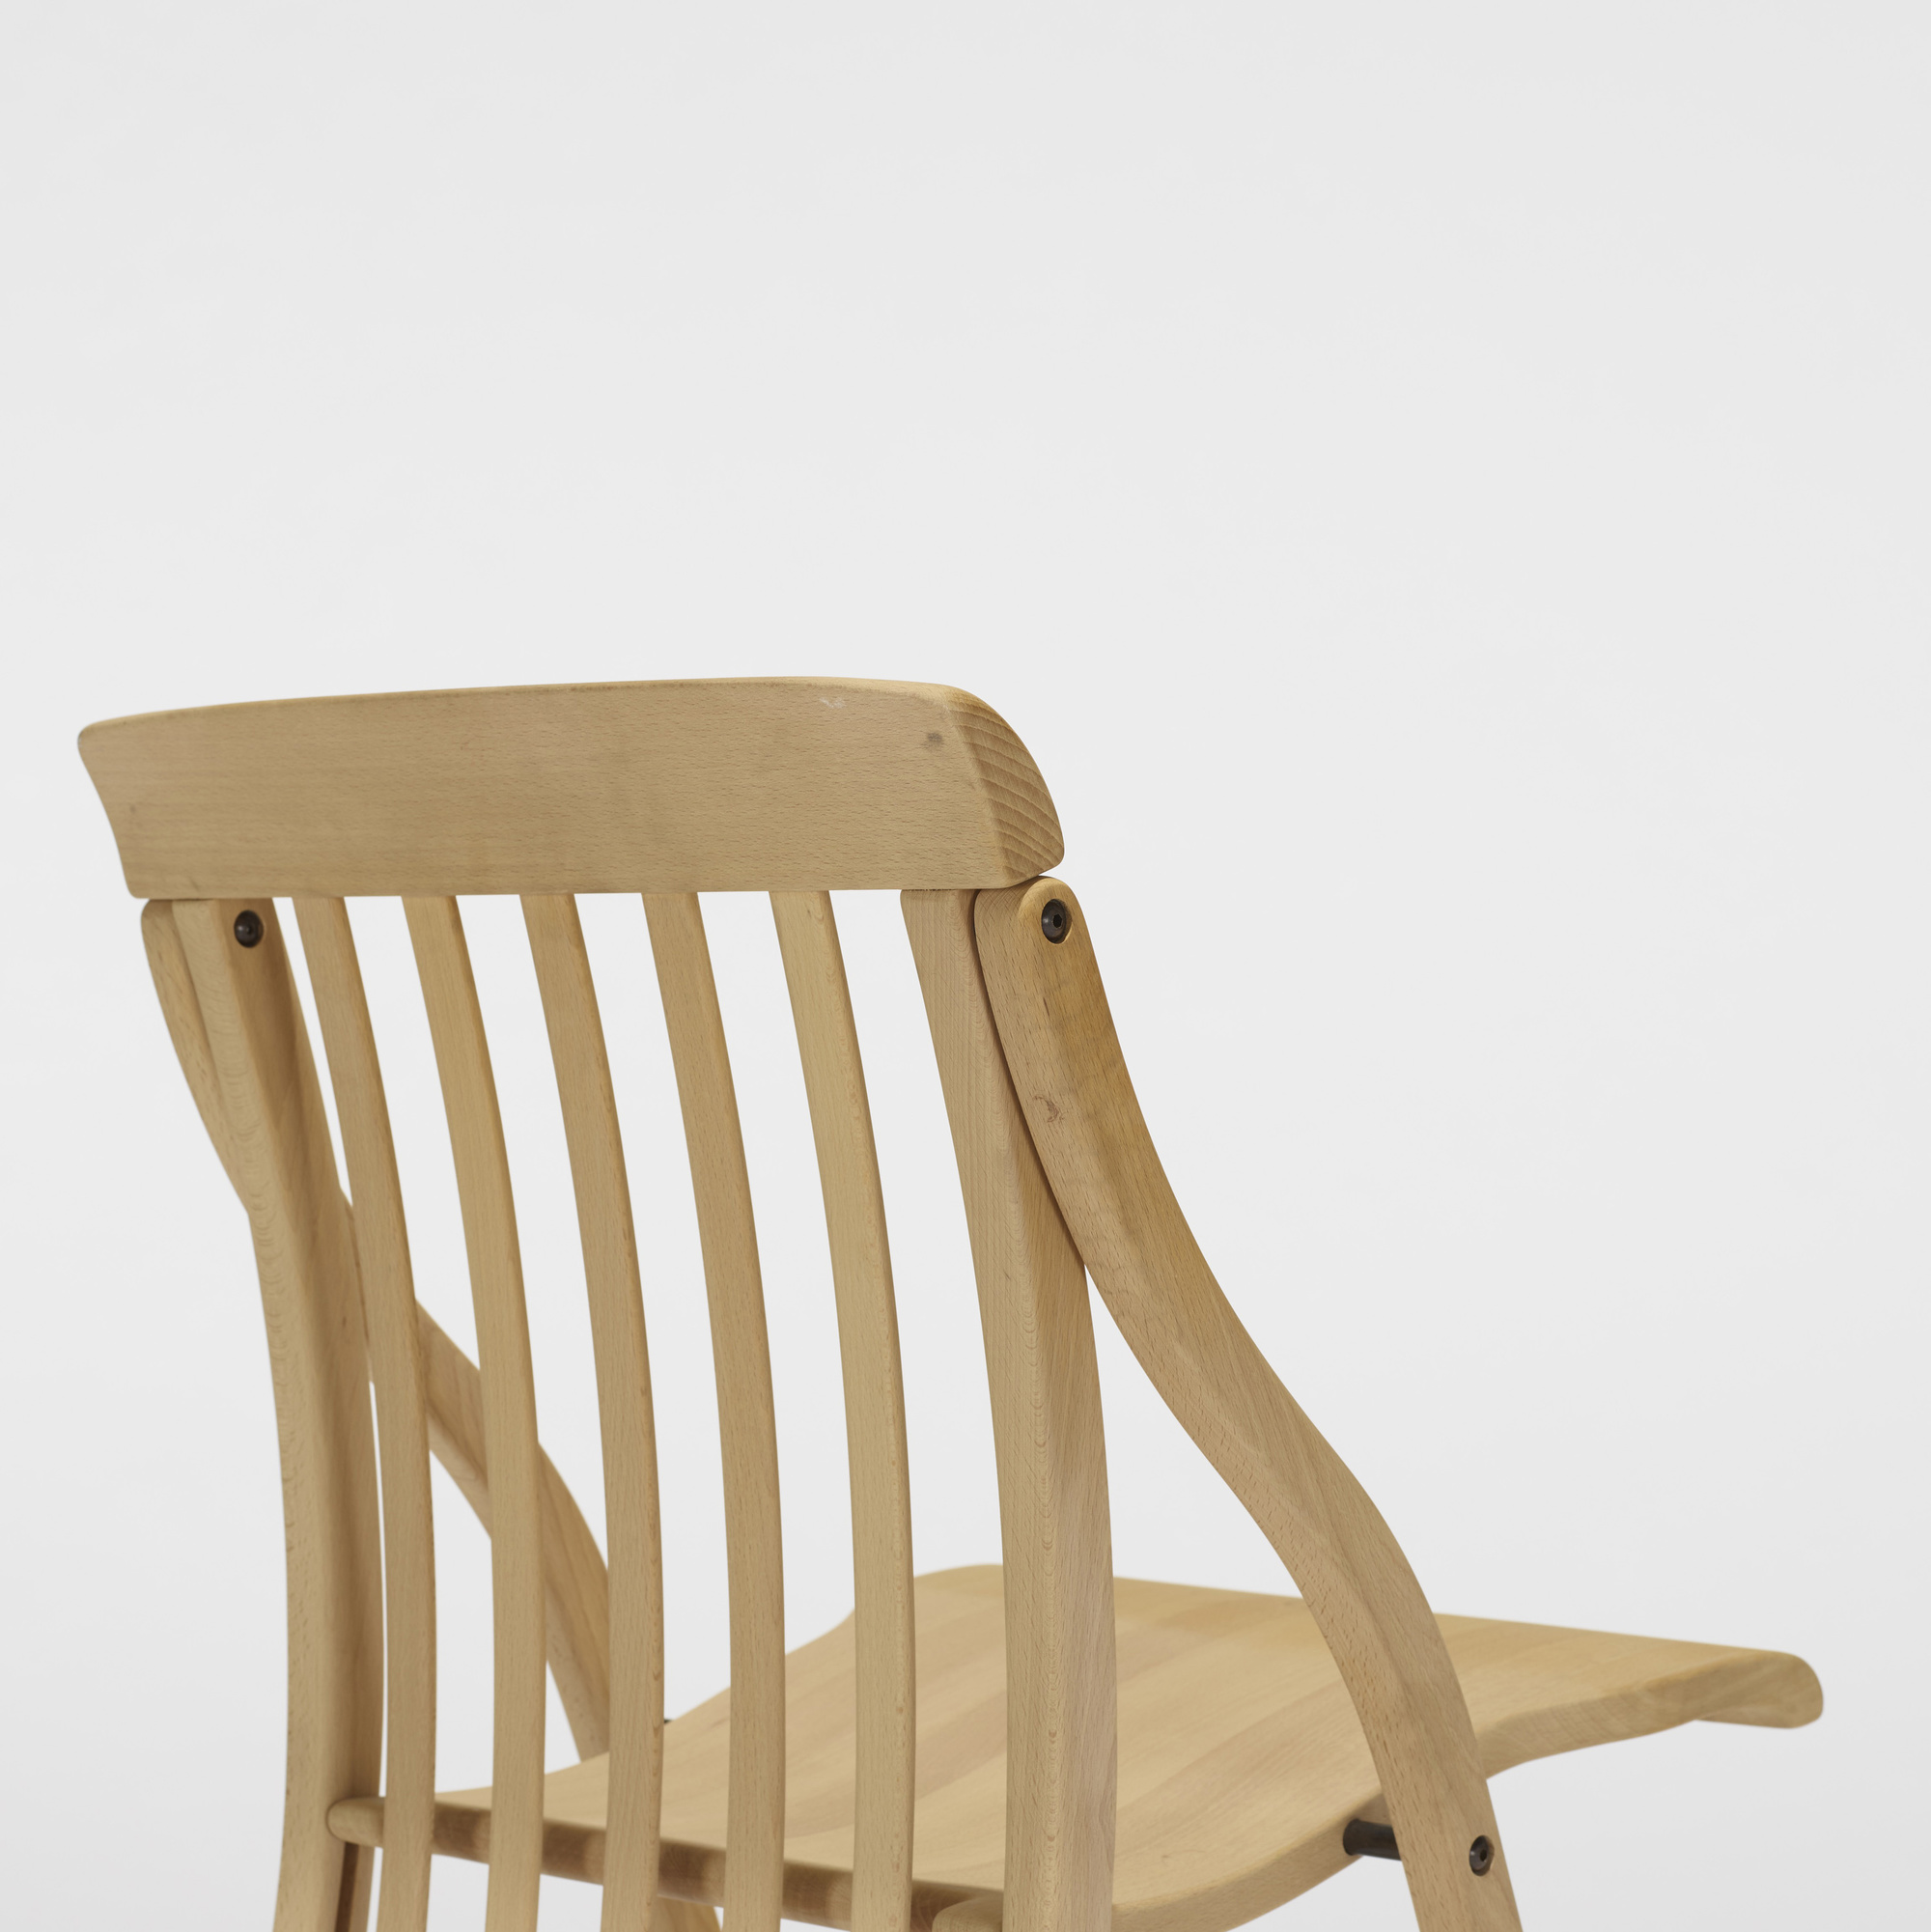 355: Michele de Lucchi / Sedia folding chair (3 of 3)